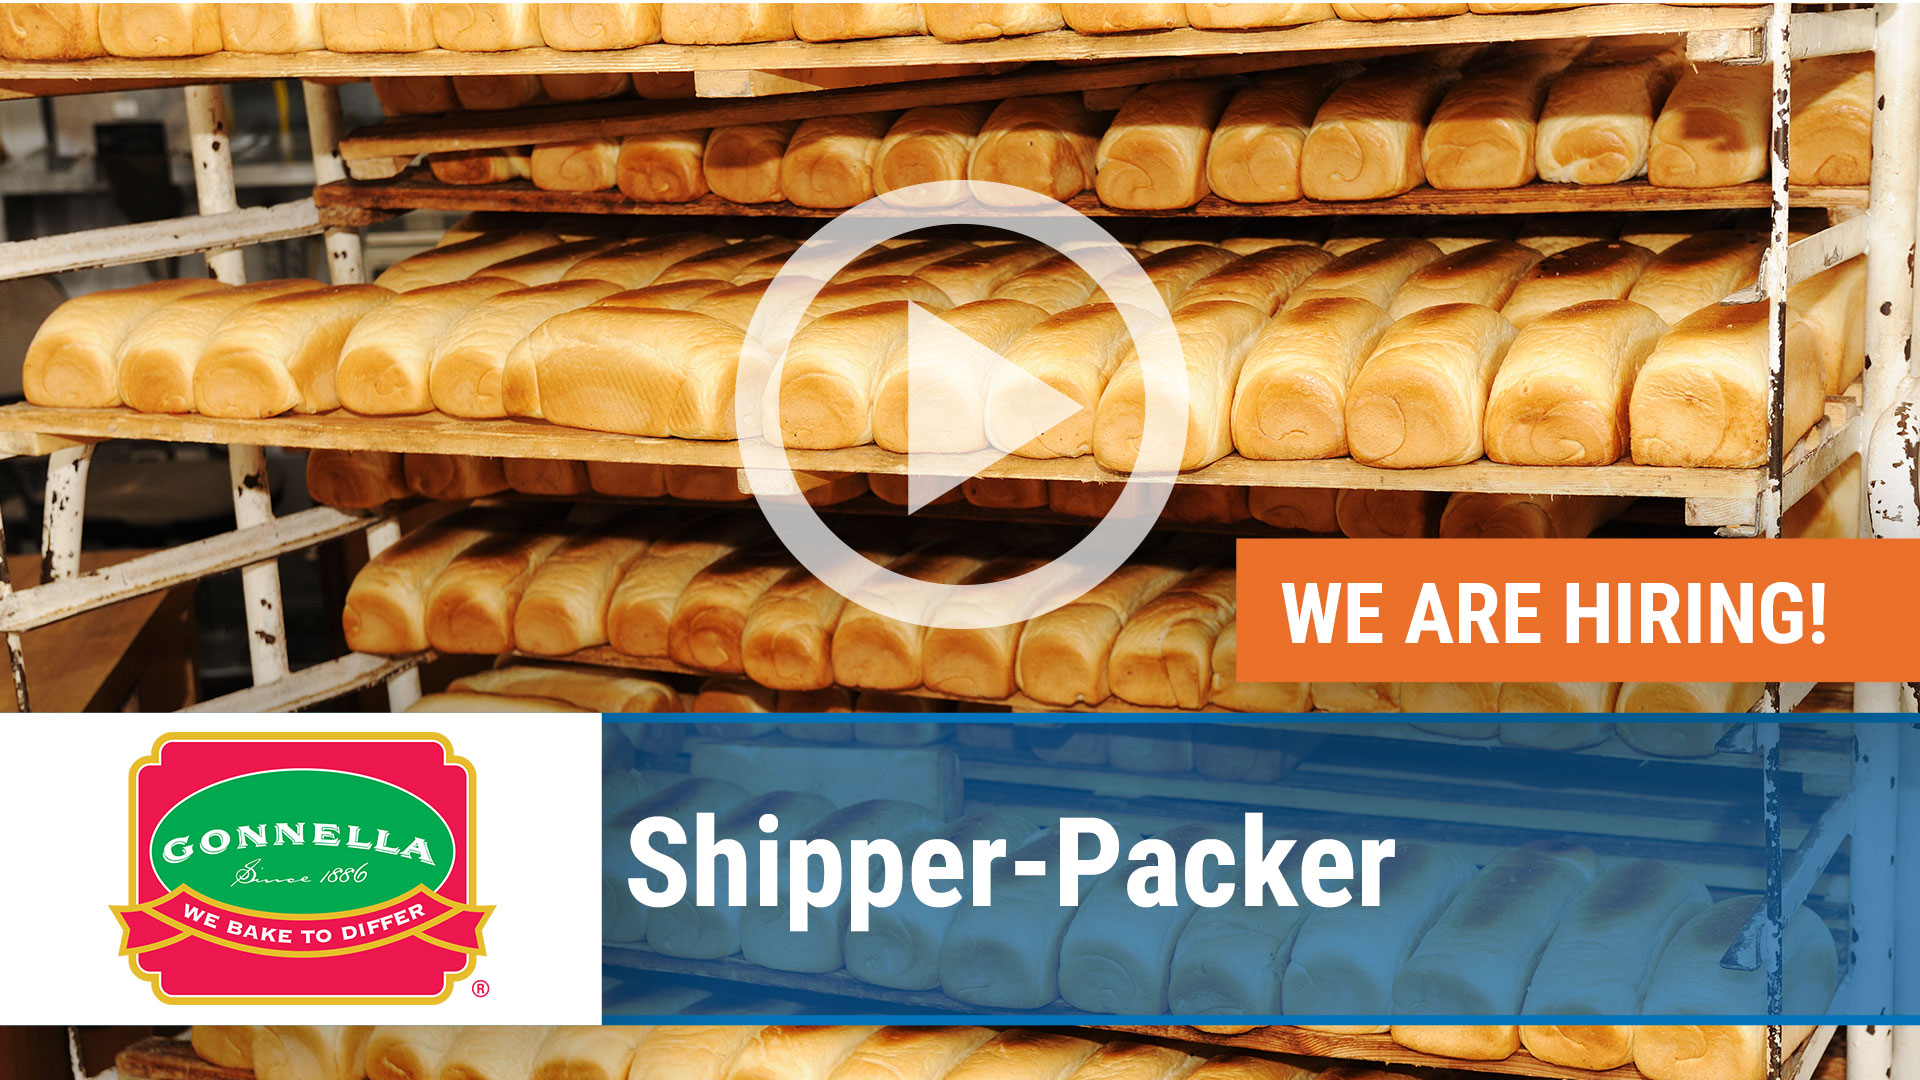 Watch our careers video for available job opening Shipper-Packer in Schaumburg, IL